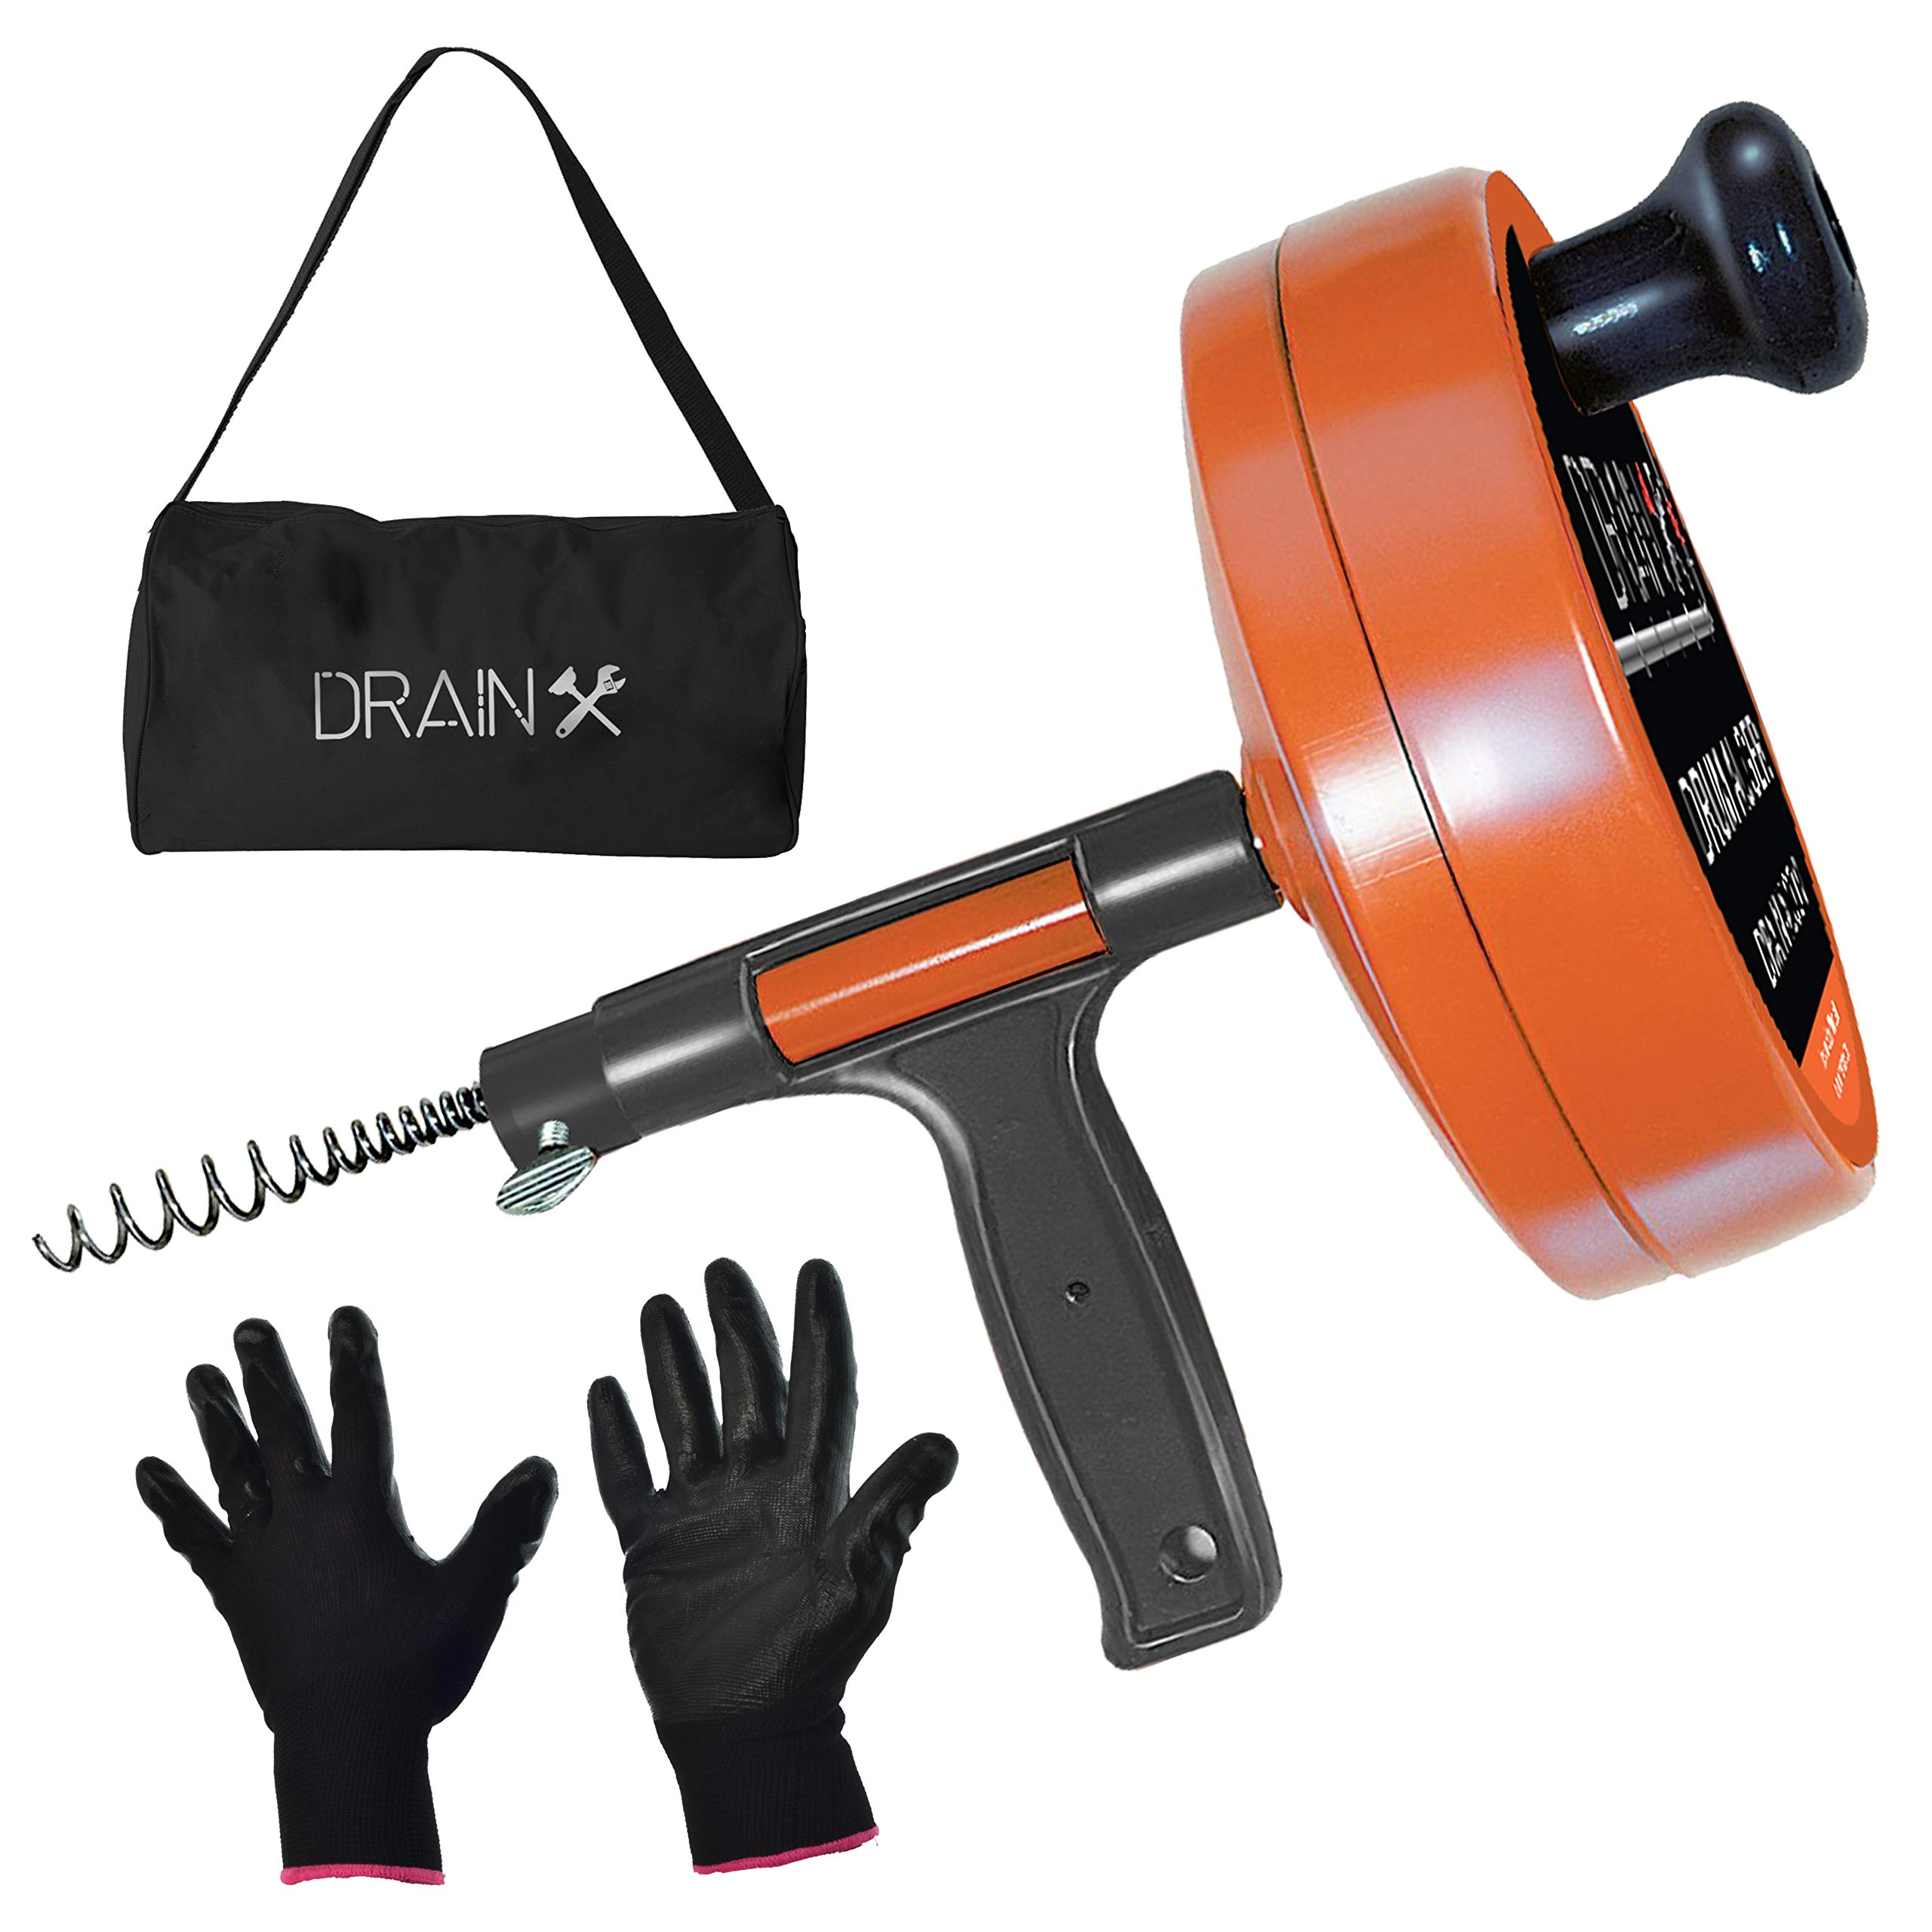 Drainx Pro Steel Drum Auger Plumbing Snake   Heavy Duty 25-Ft Drain Snake Cable with Work Gloves and Storage Bag